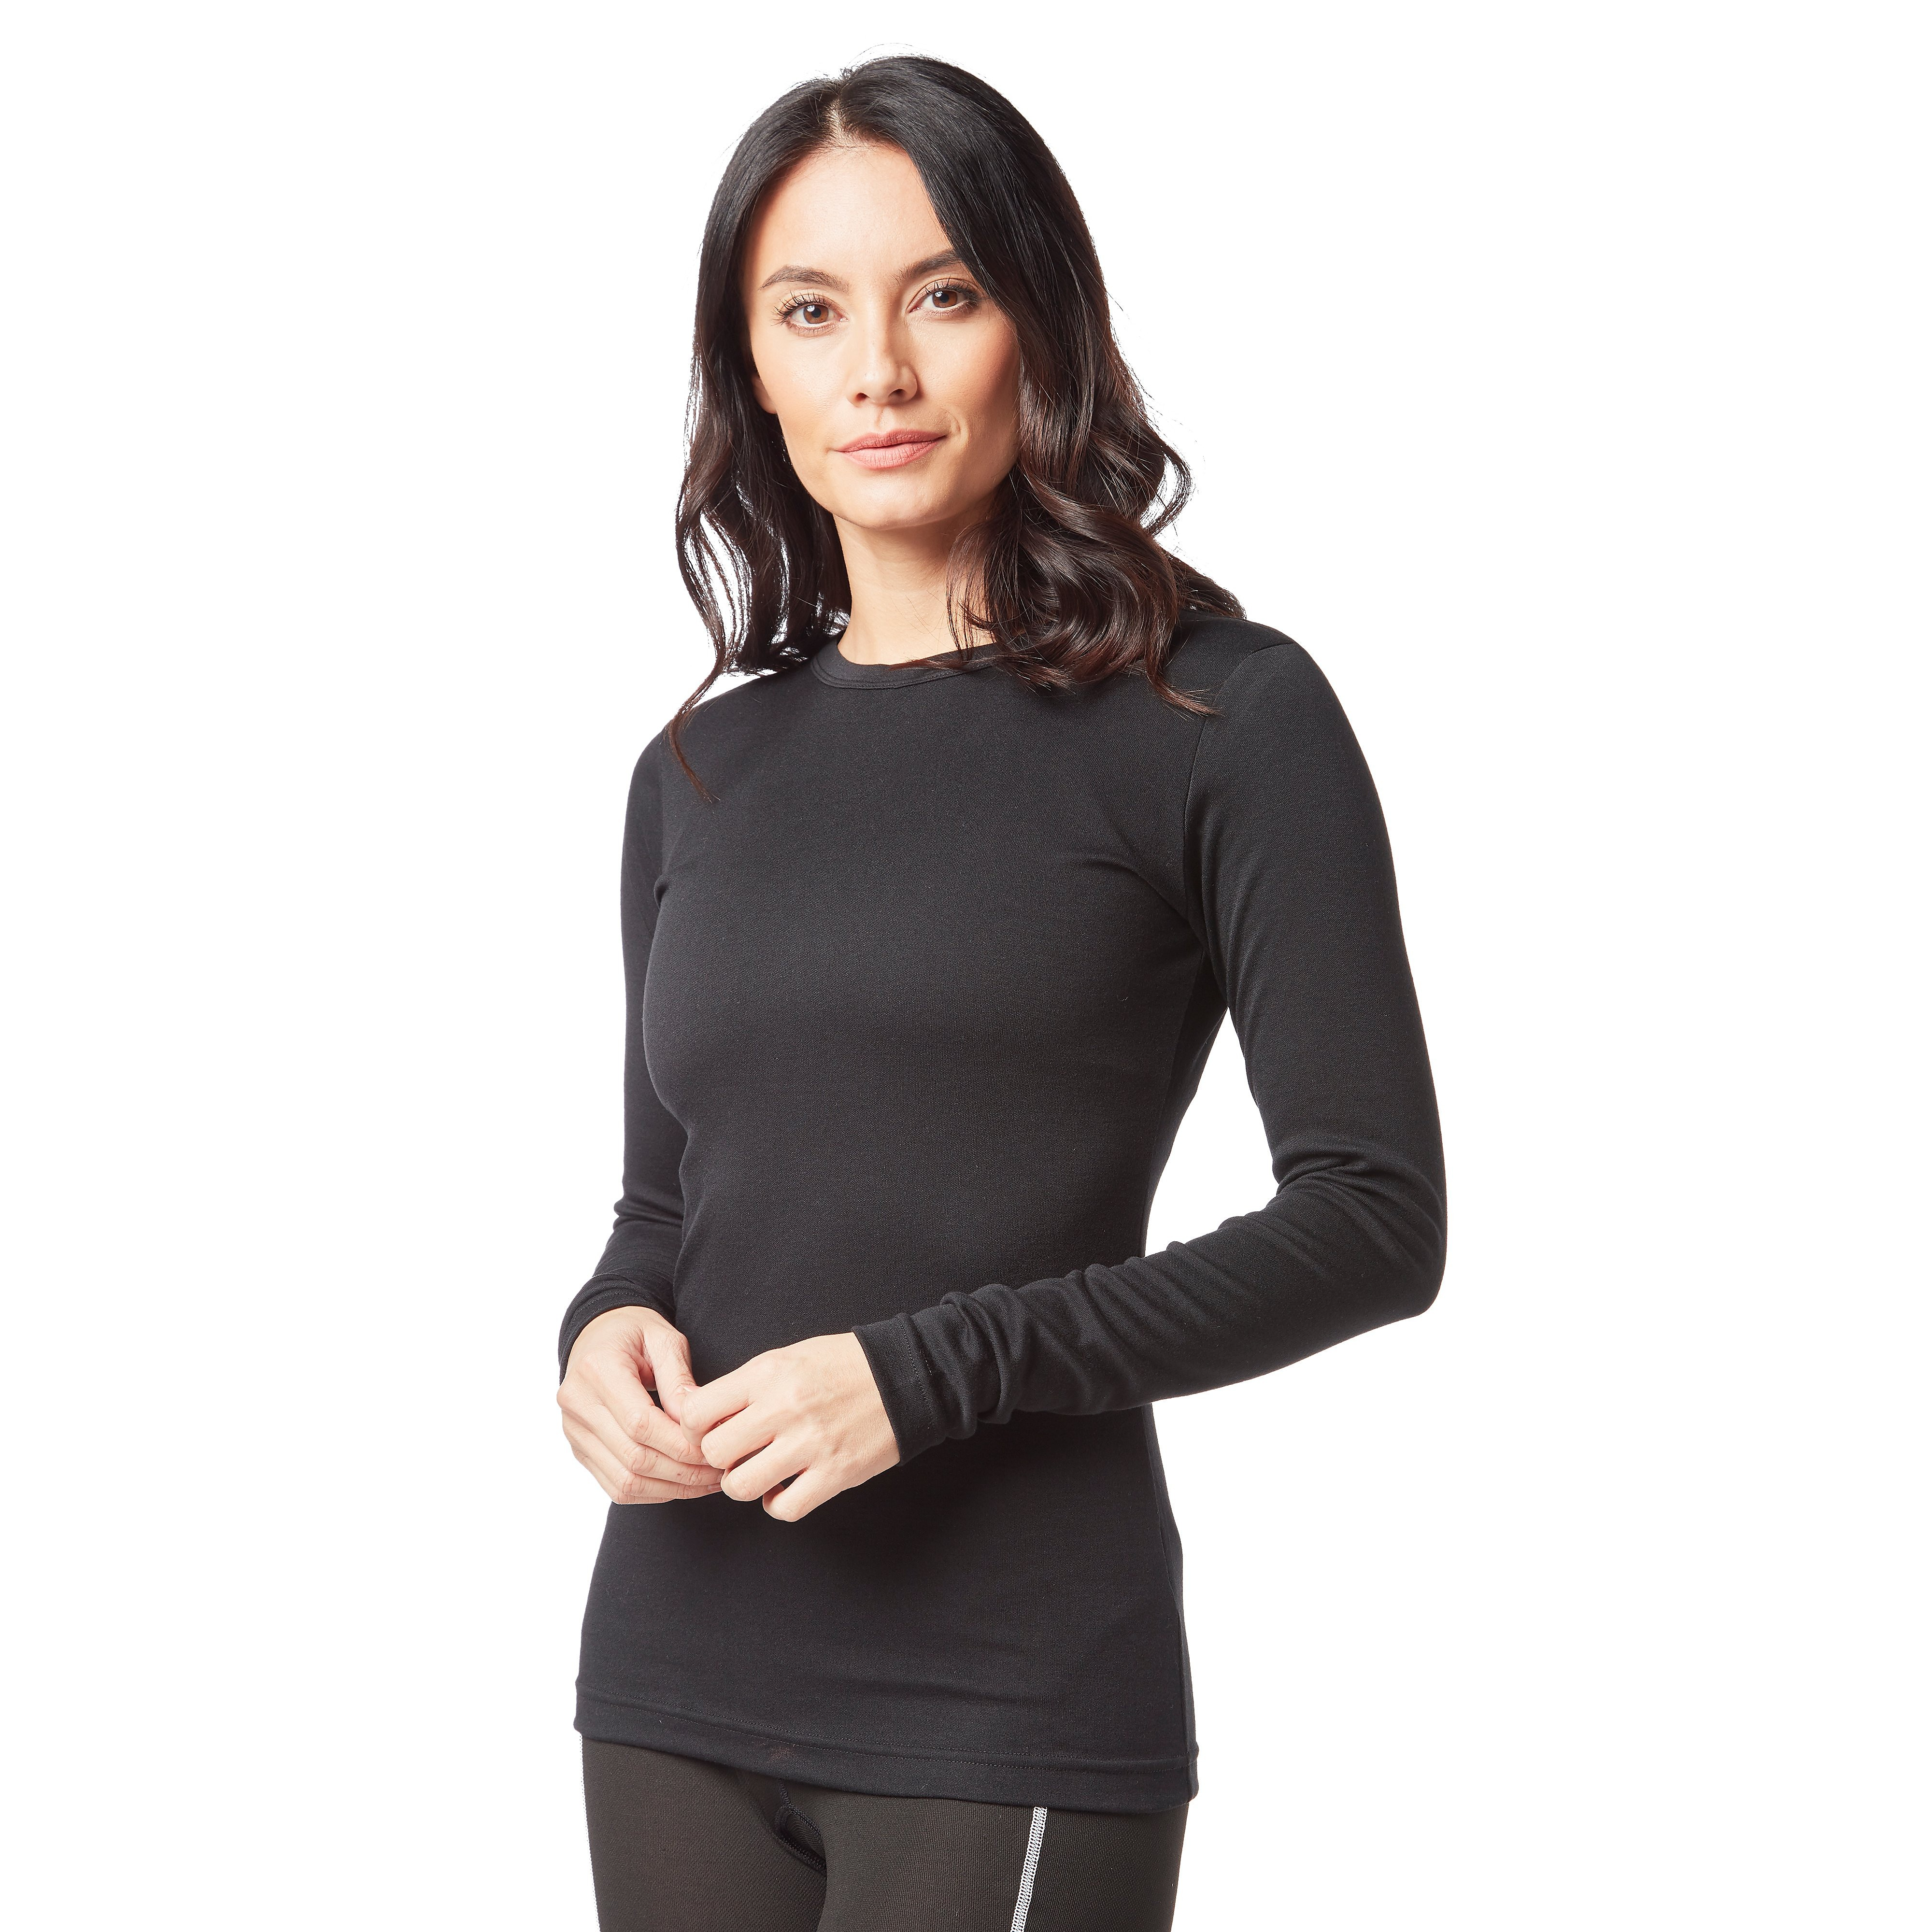 PETER STORM Women's Long Sleeve Thermal Crew Baselayer Top